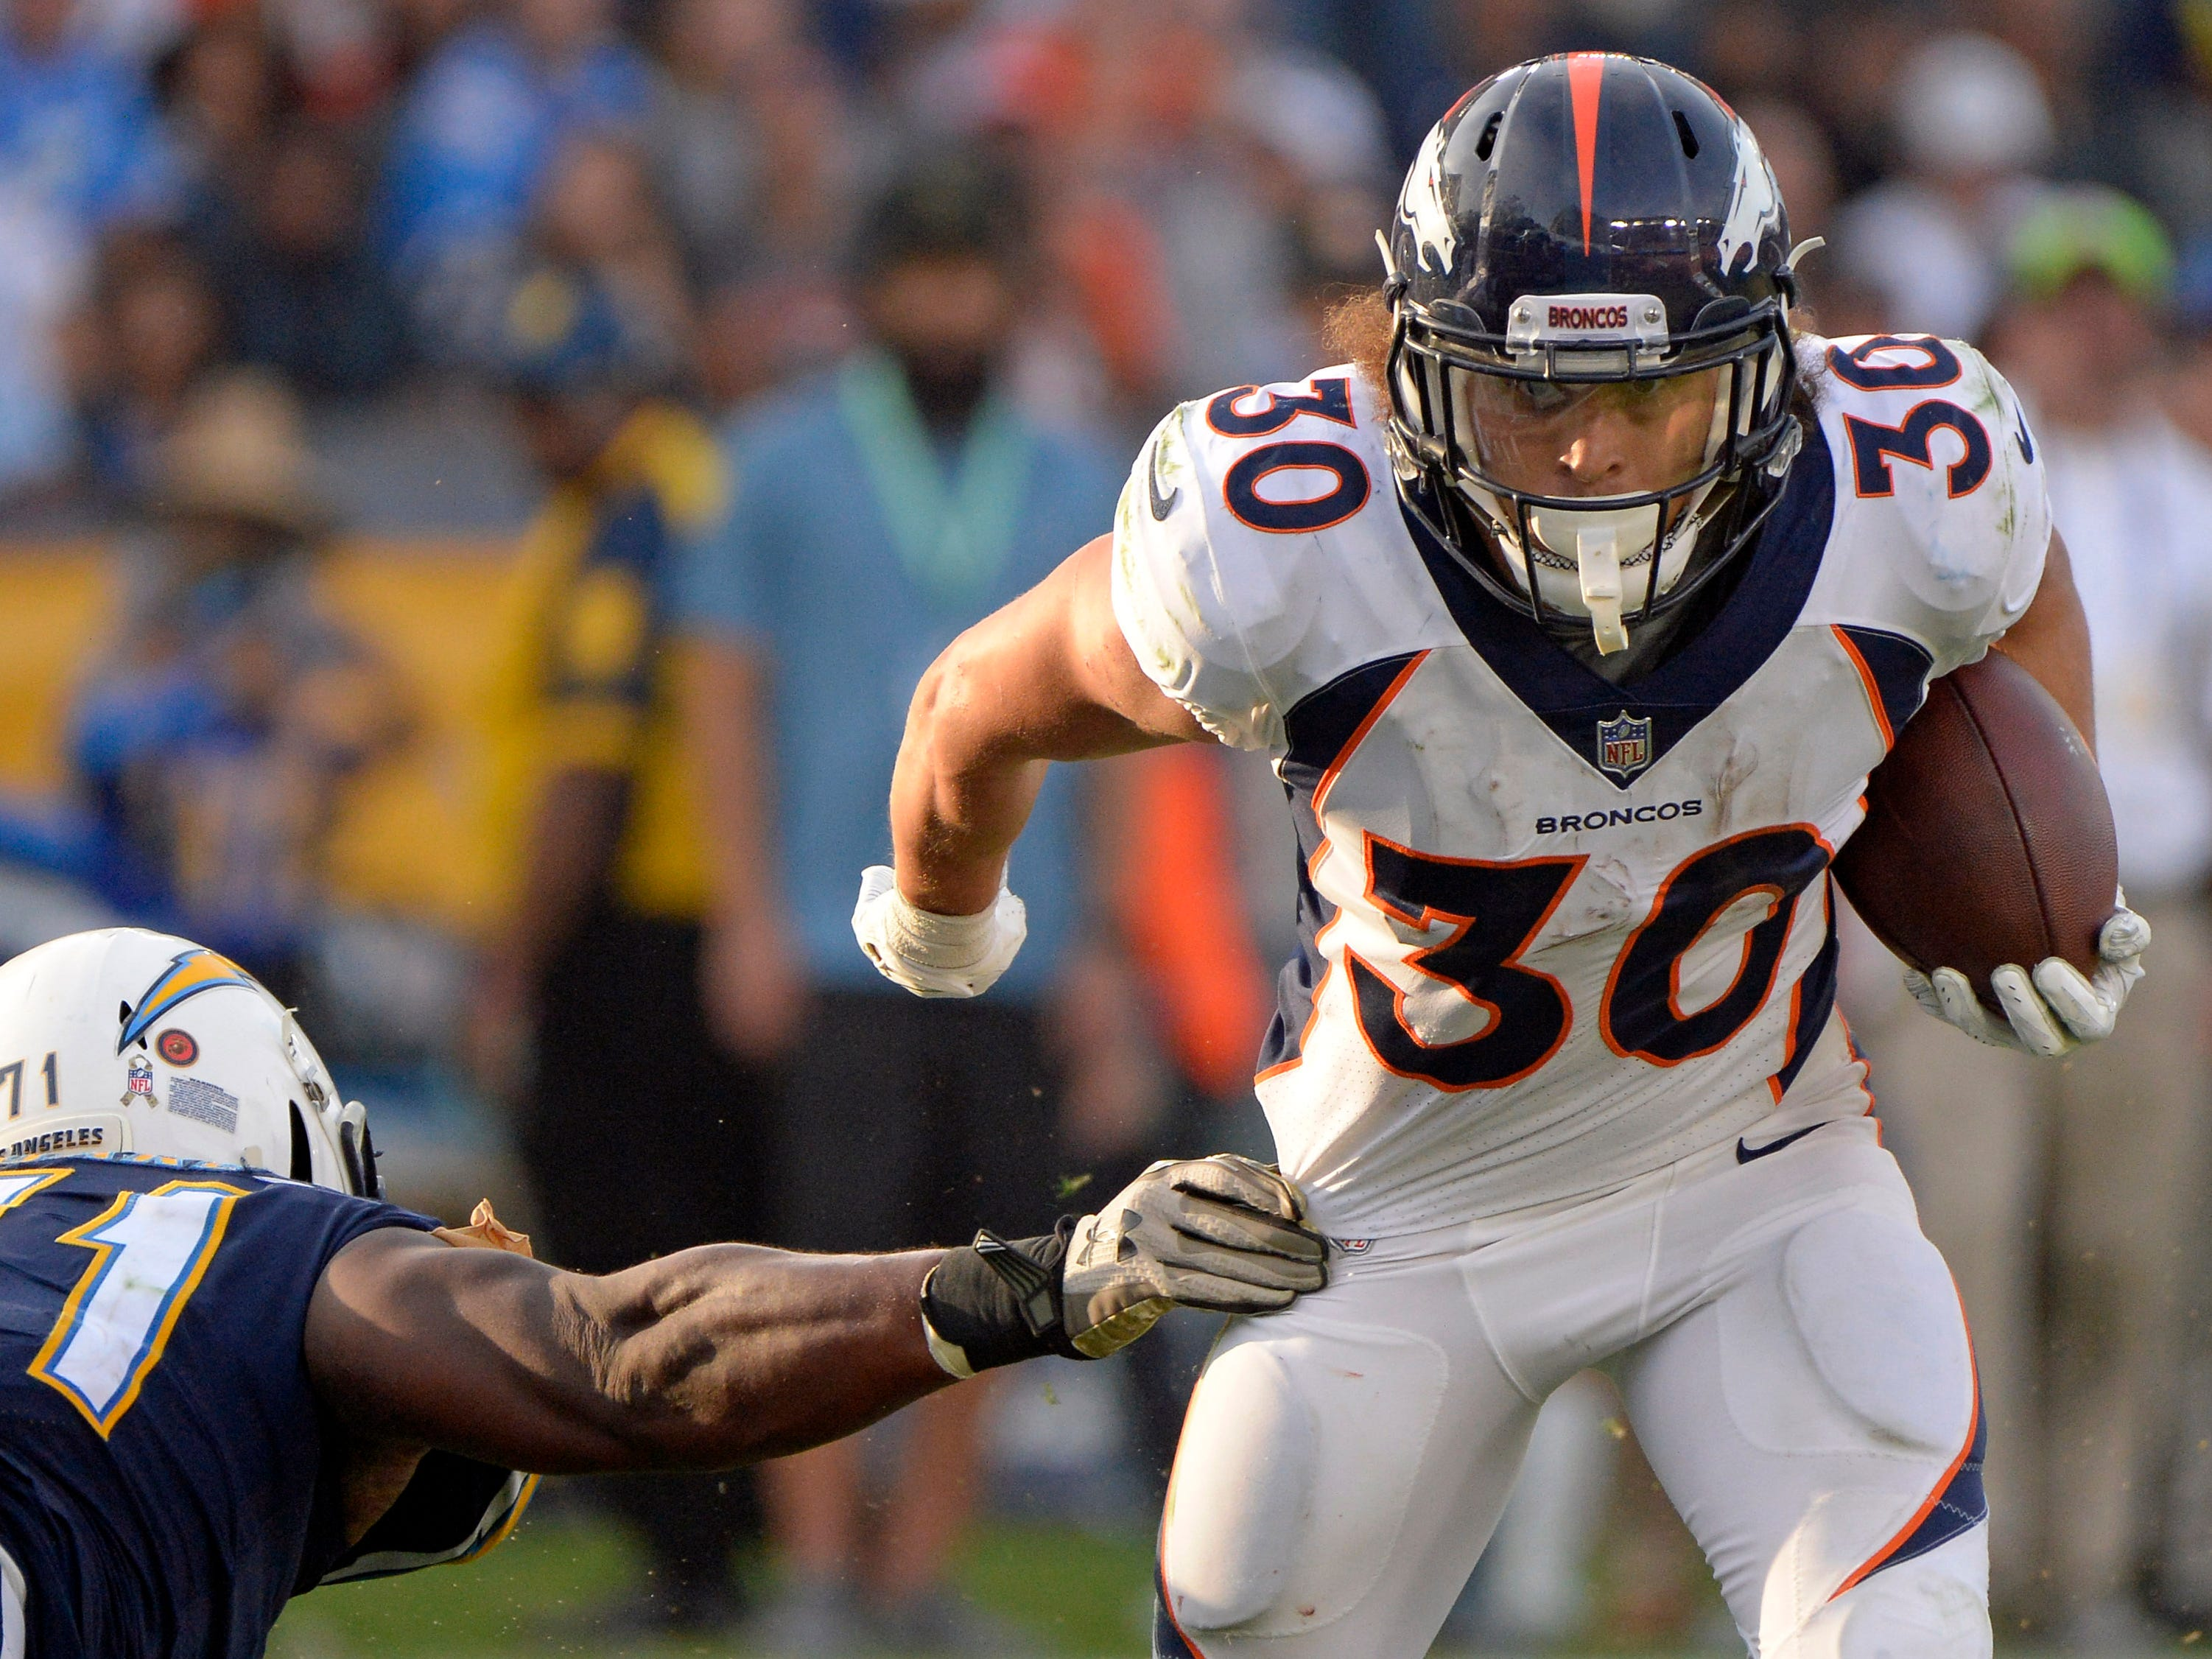 21. Broncos (27): They're under radar like a Special Operations Black Hawk. They're also one game out of playoffs, giving good teams all they can handle.